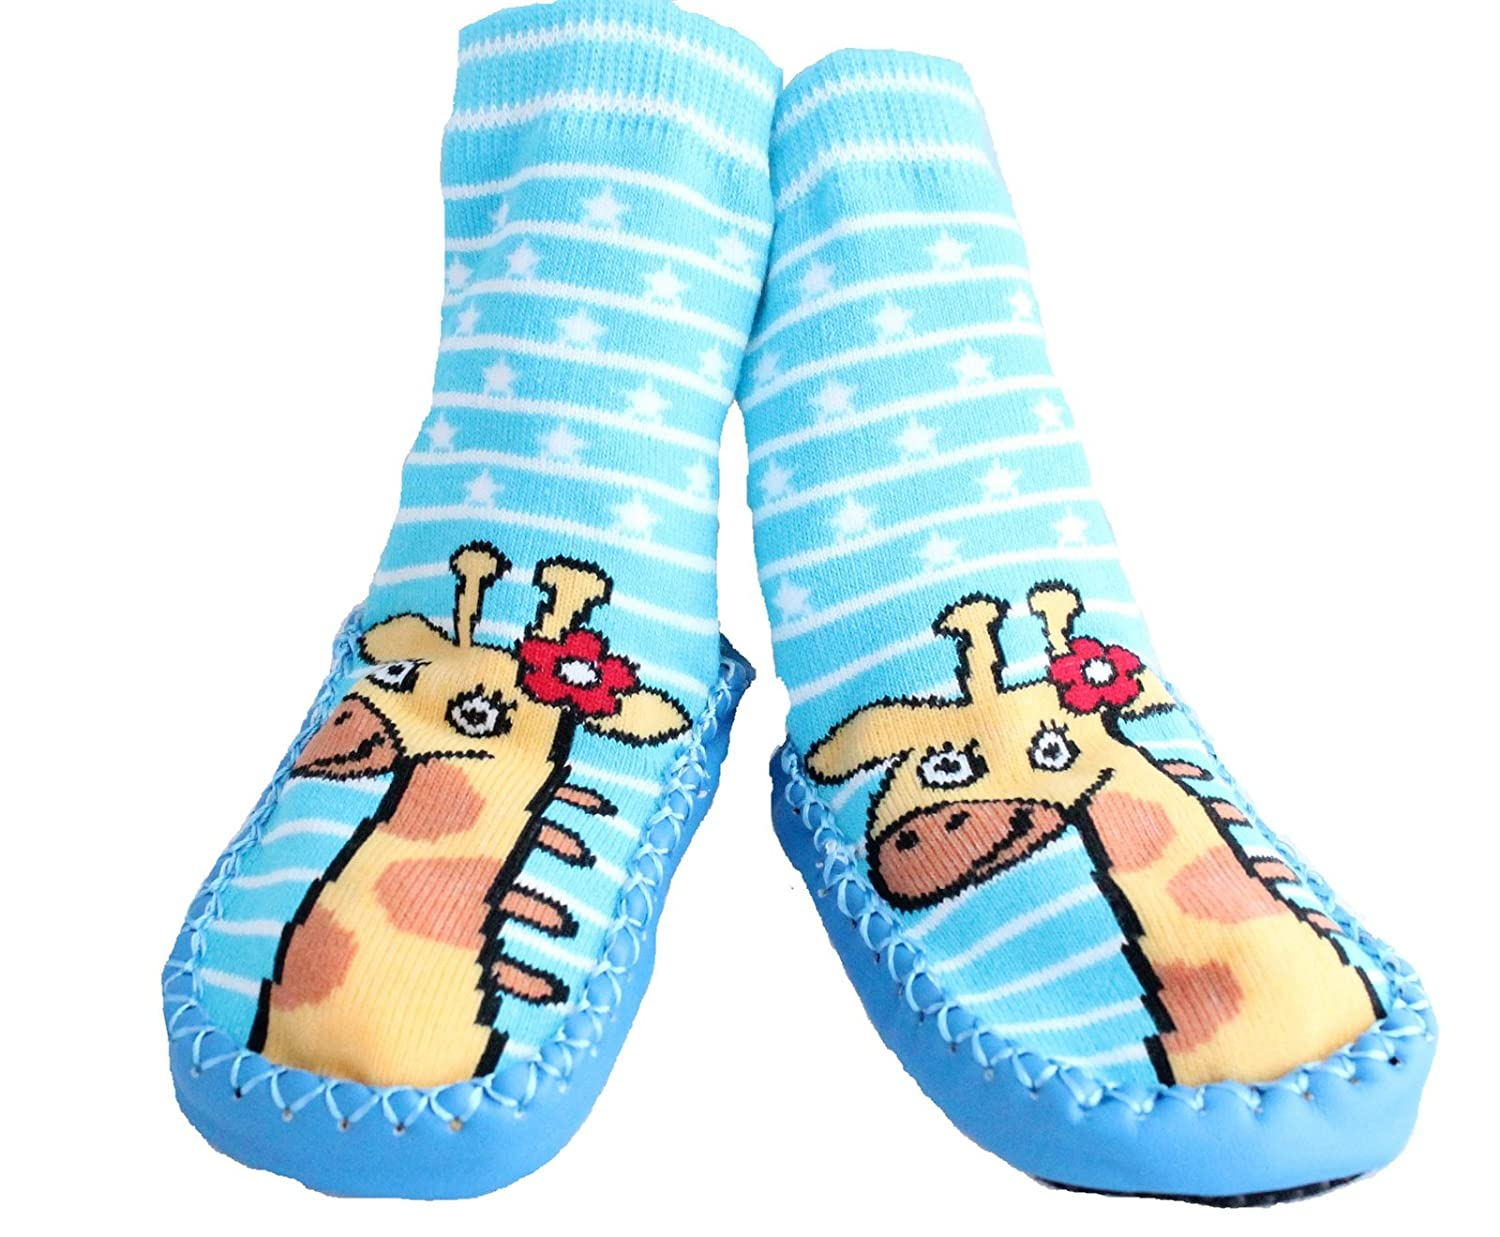 Baby Toddlers Kids Indoor Slippers Shoes Socks Moccasins NON SKID BLUE STRIPED GIRAFFE (9-18 MTHS)